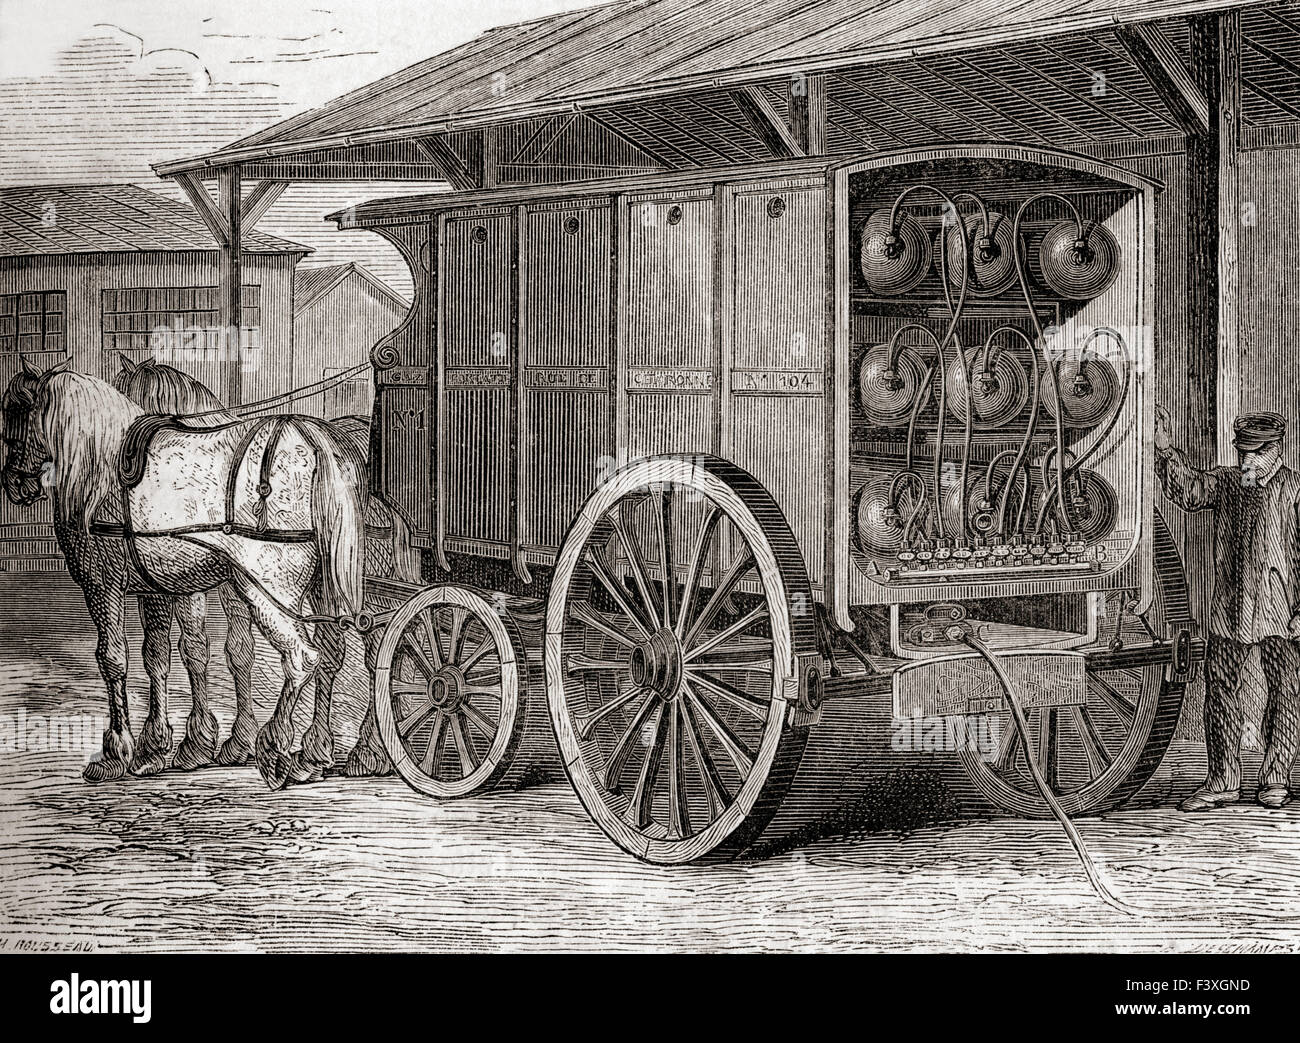 Horse drawn vehicle used to transport compressed gas in portable containers in the 19th century. - Stock Image